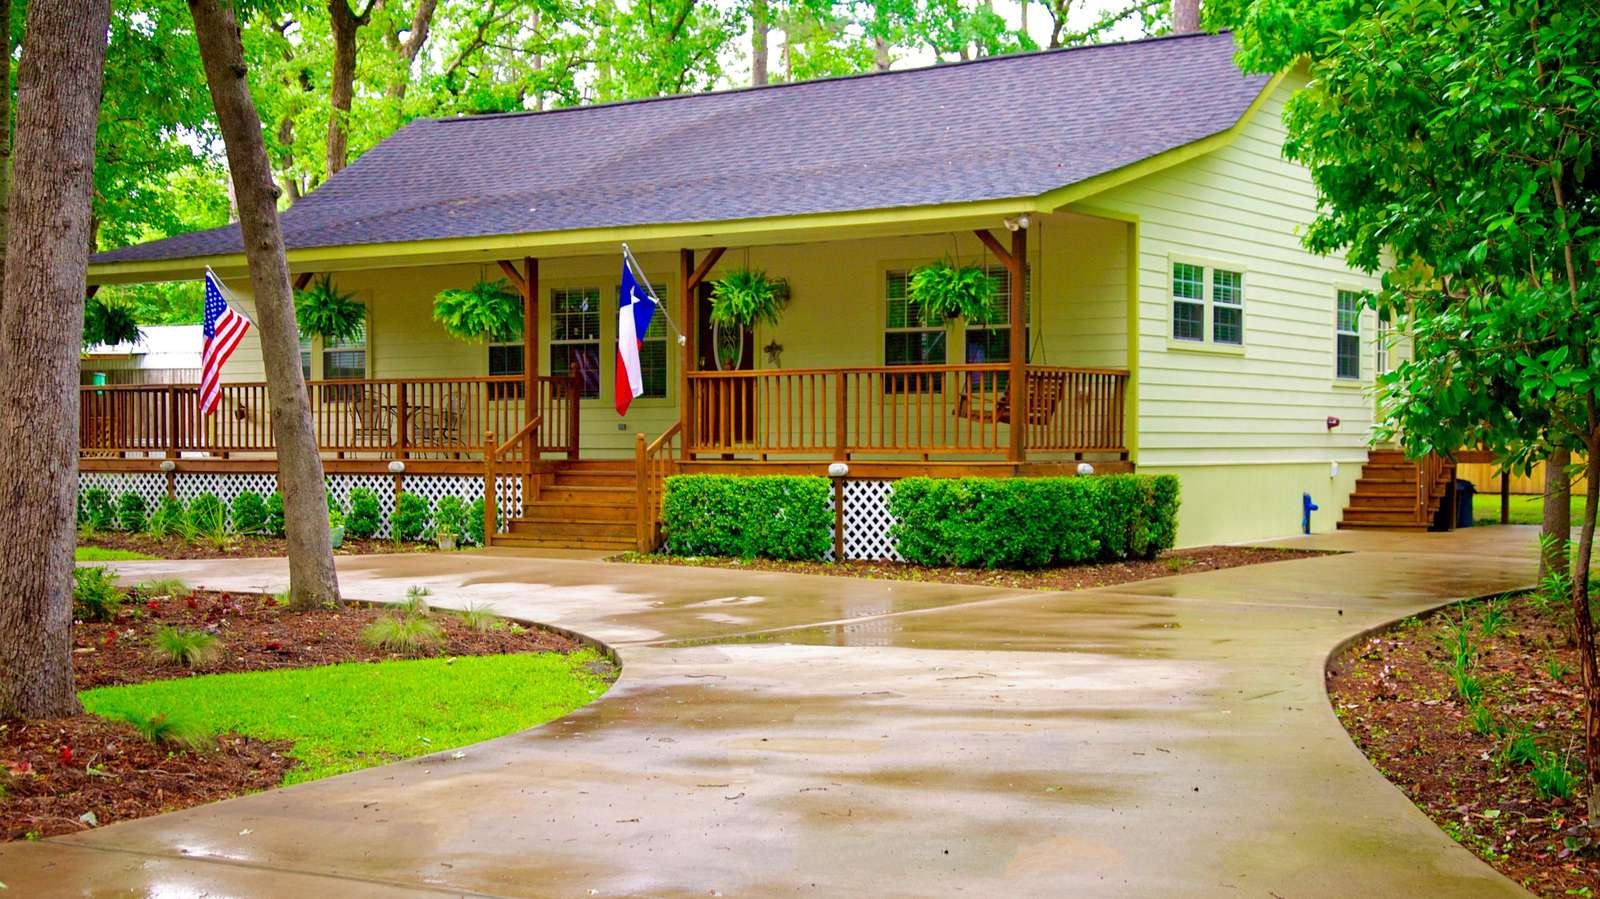 The ever popular and beautiful Gregory home.  3 large bedrooms, dock and the ever important country setting.